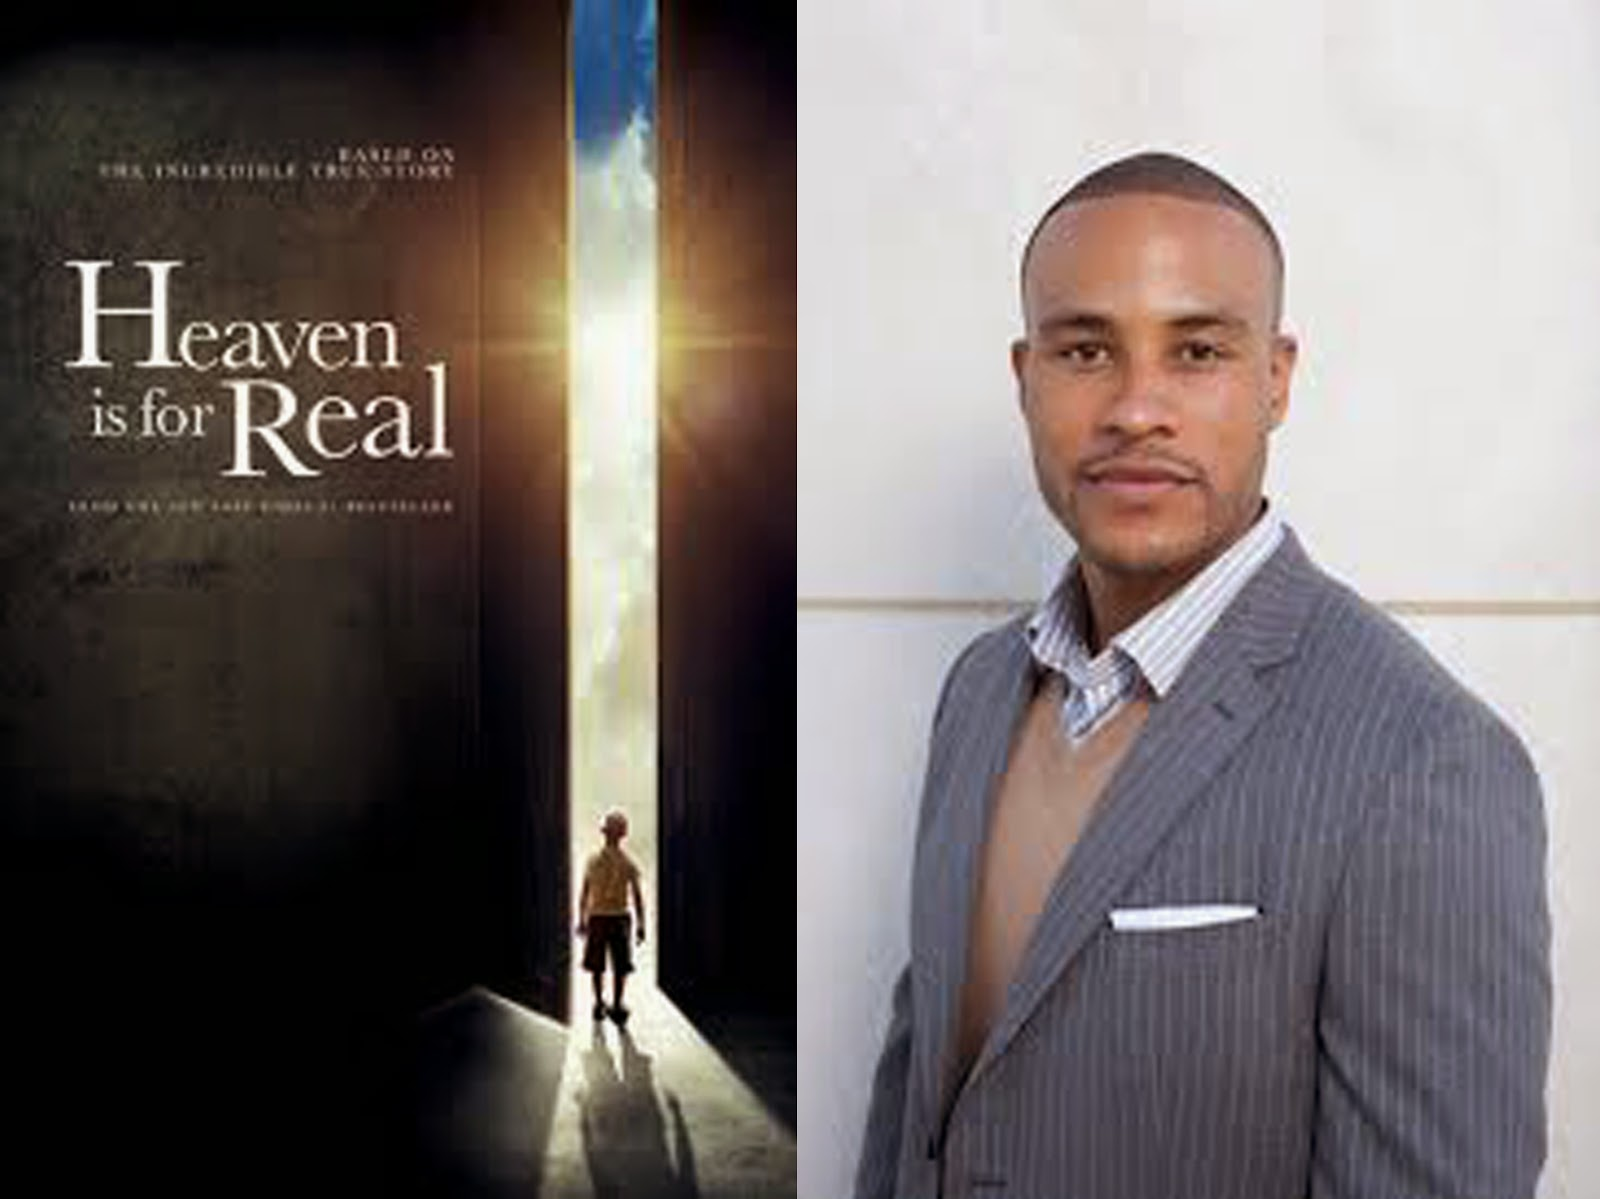 Lady charmaine live vp of production sony pictures devon franklin talks 39 heaven is for real 39 on